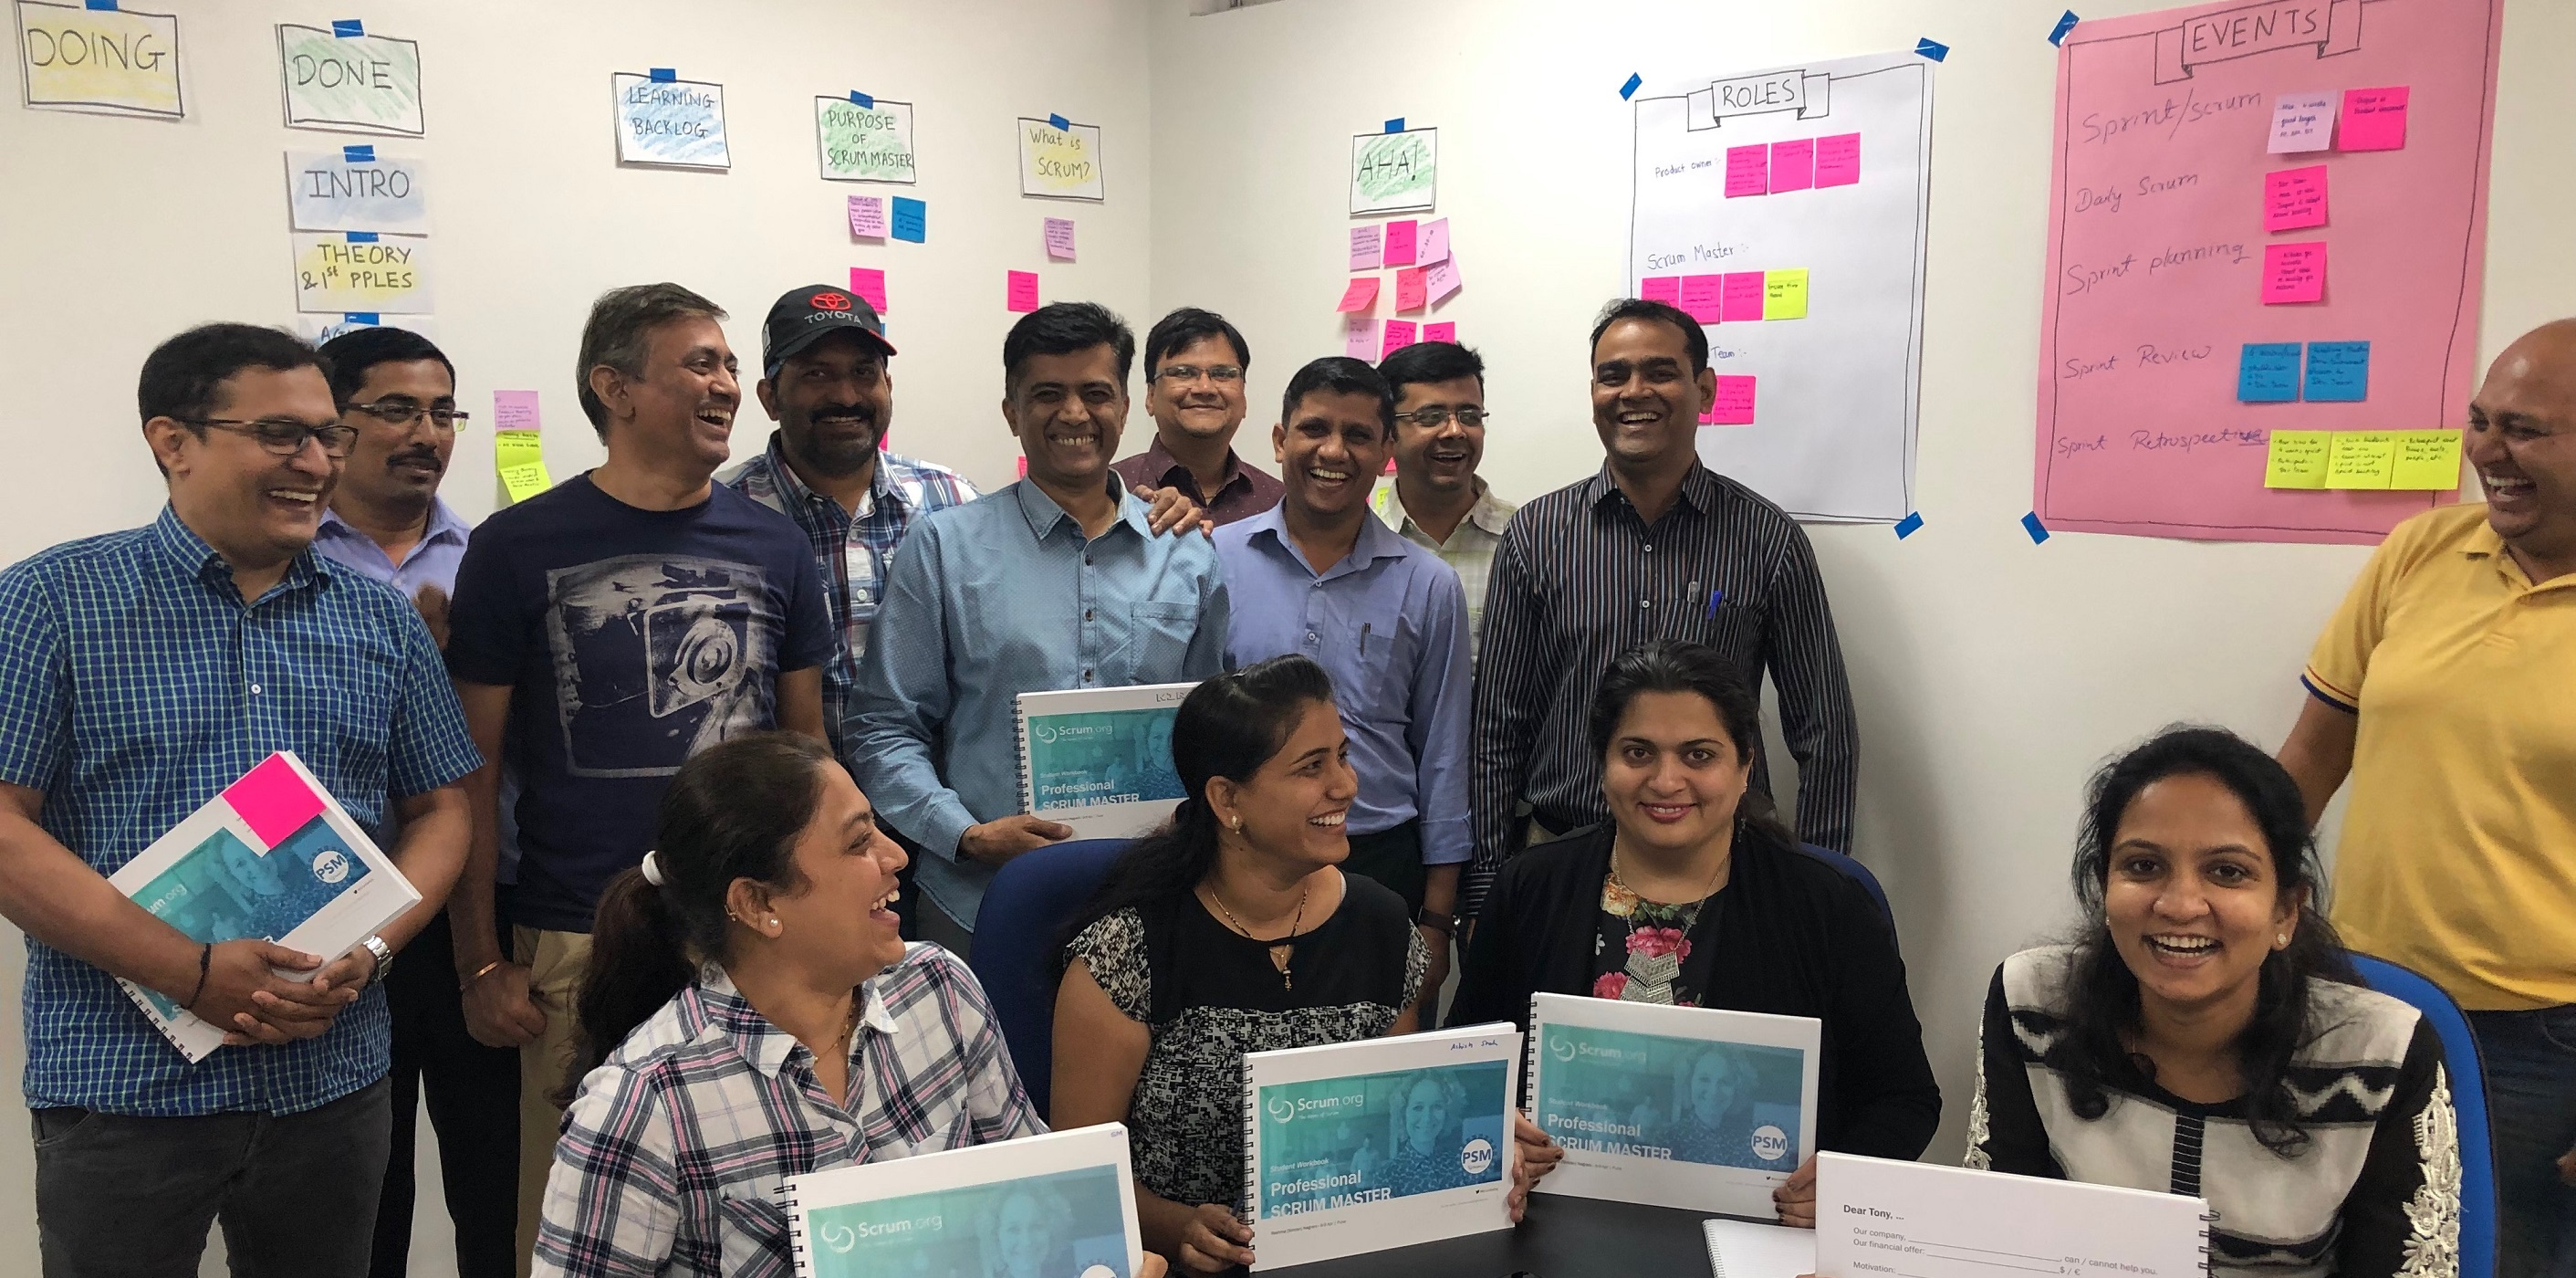 Pune PSM Agile For Growth